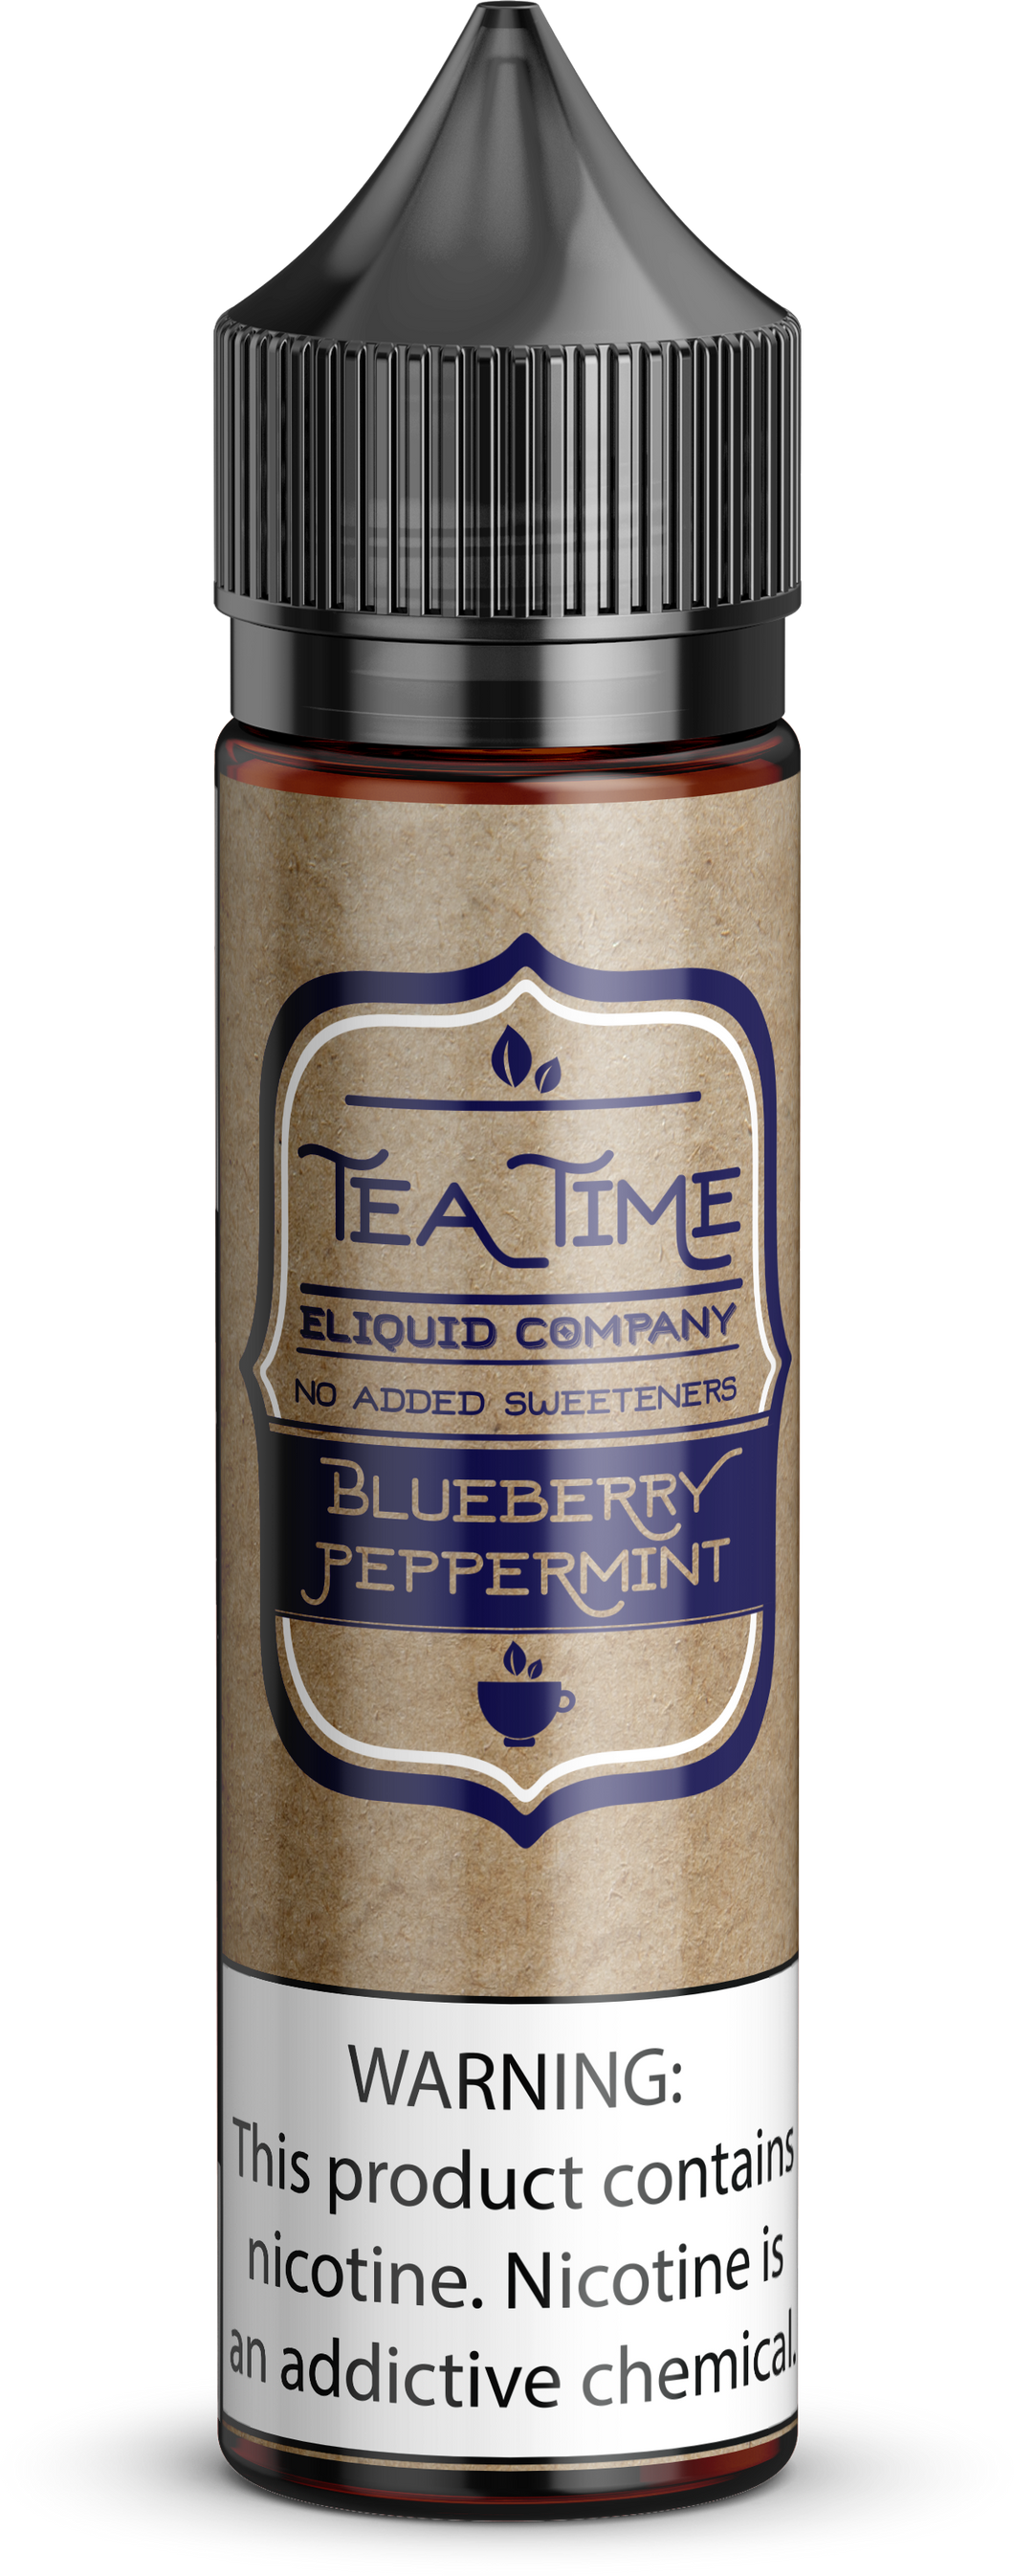 Blueberry Peppermint Tea | Vape Juices and E-Liquids | Vape Juice | E-Liquids | E-Cigarettes | Tea Time Eliquid Co.